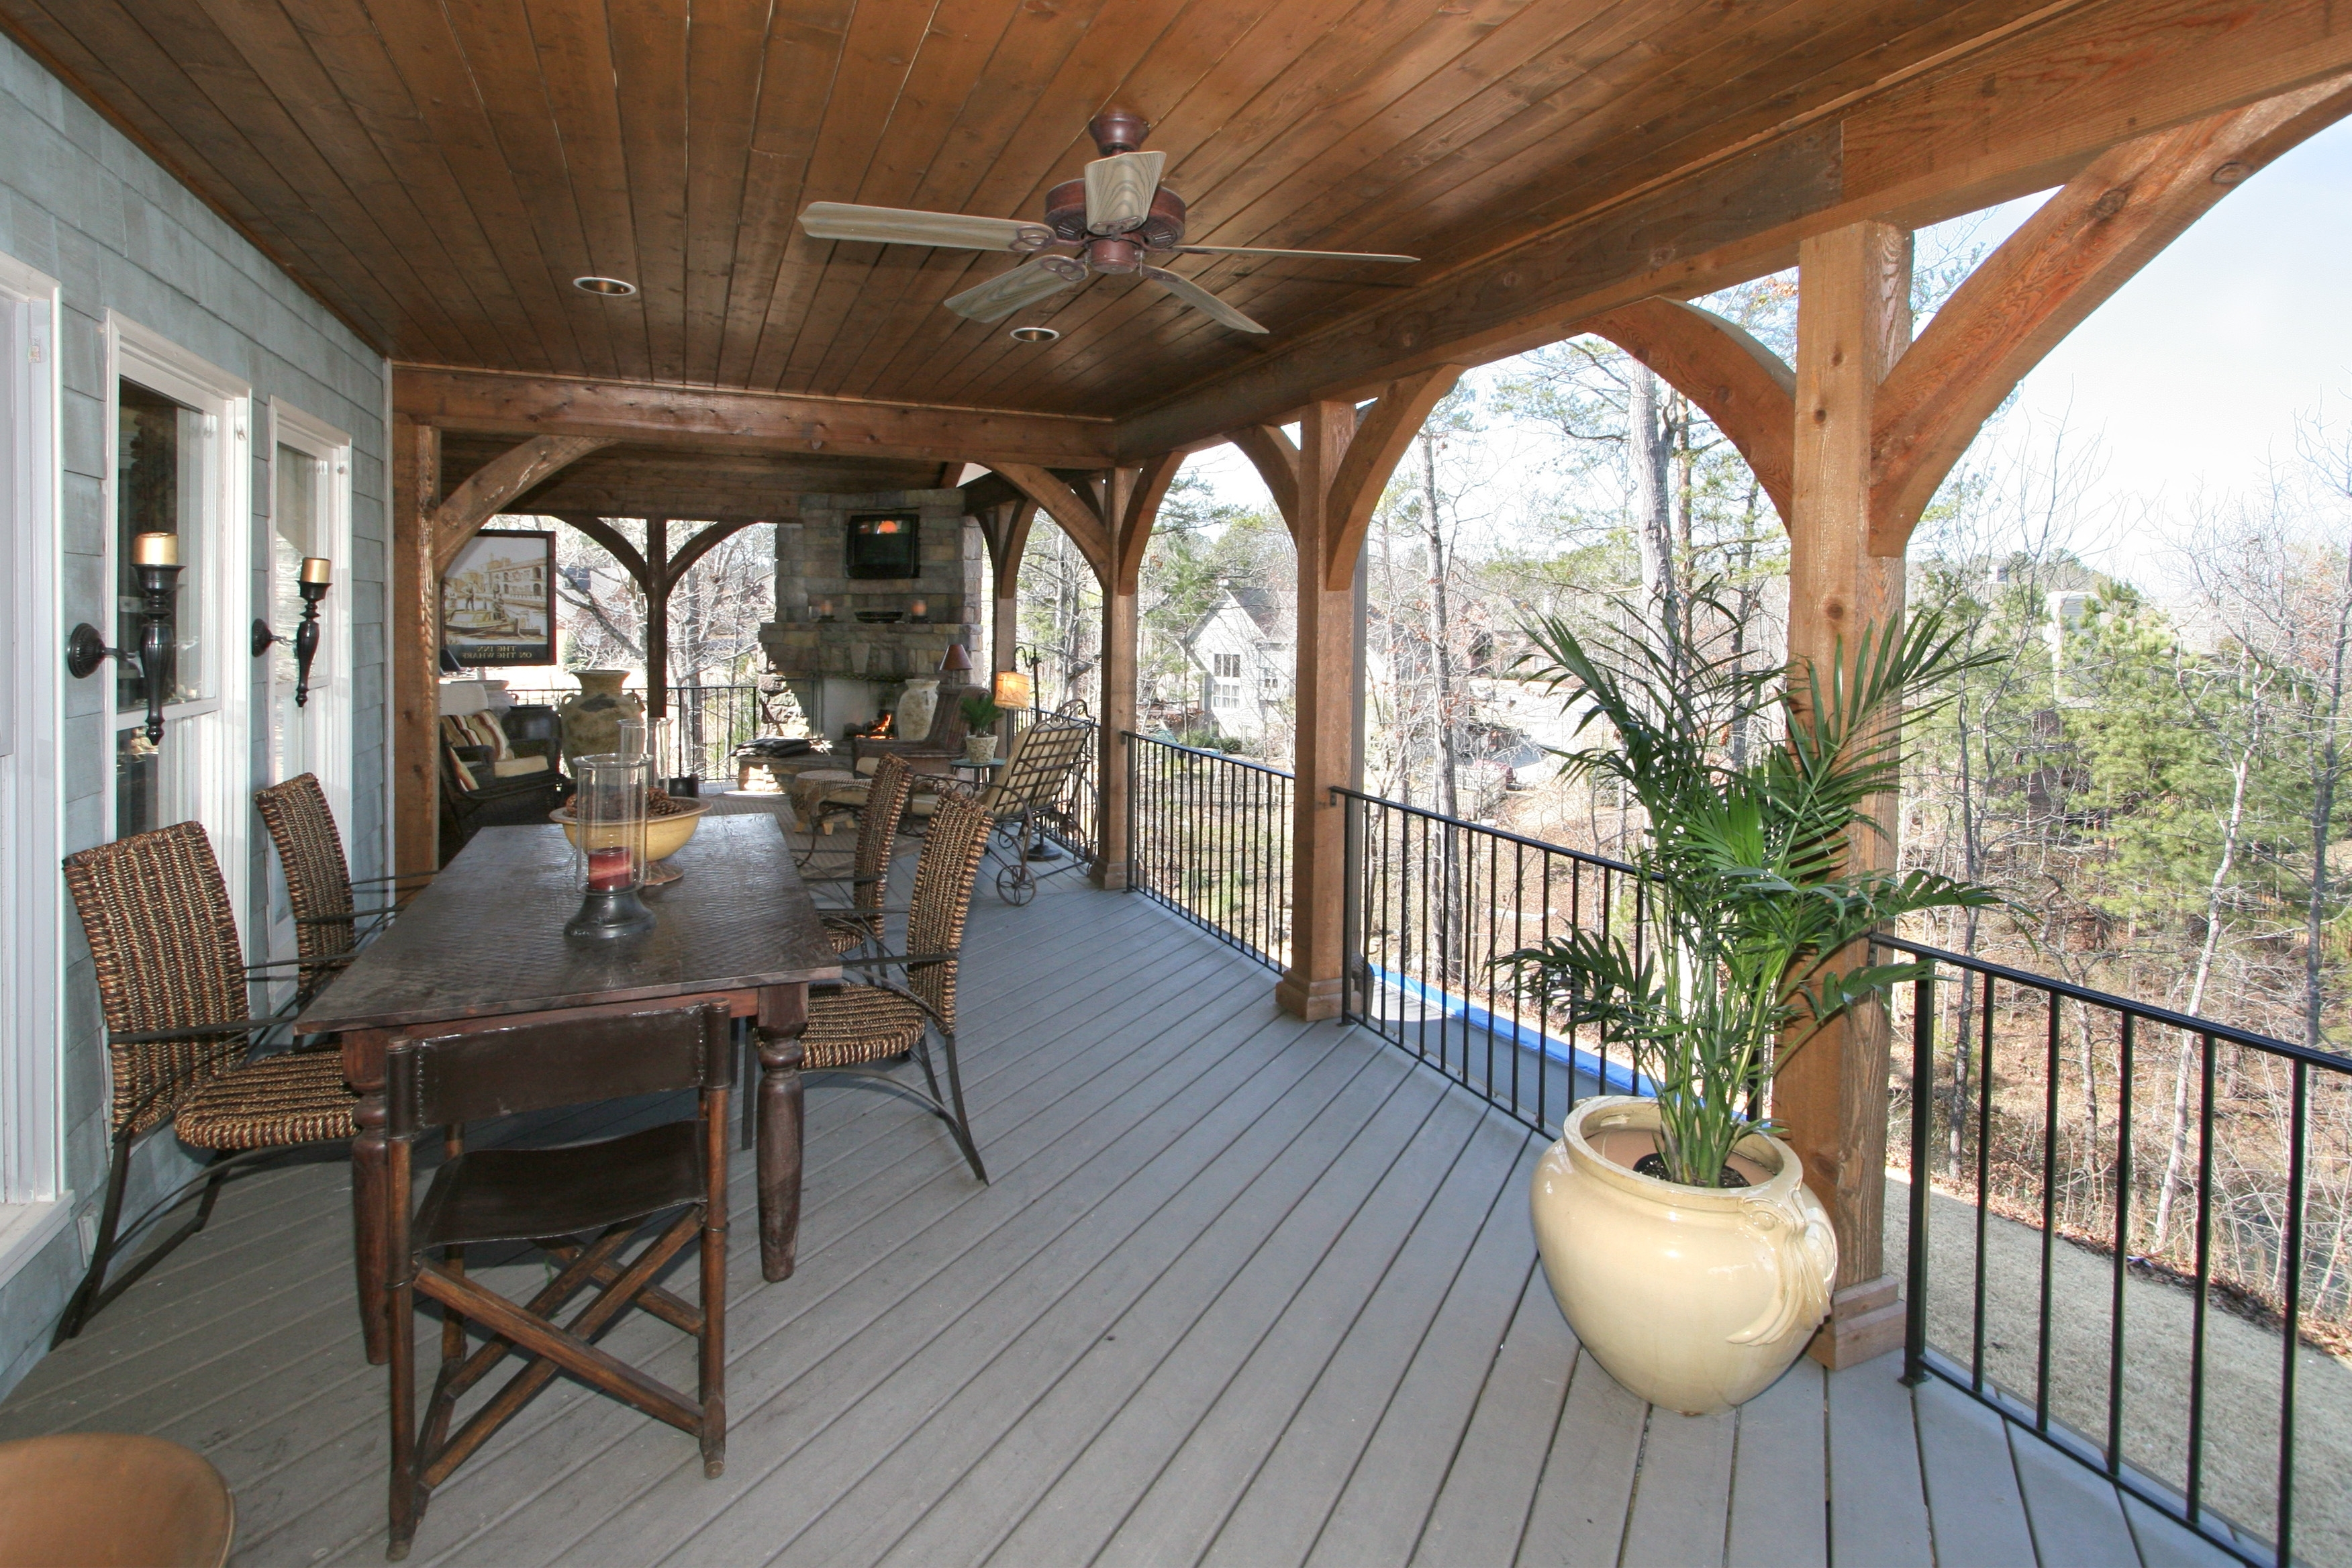 Outdoor Ceiling Fans For Decks Throughout Most Up To Date Outdoor Living St (View 7 of 20)